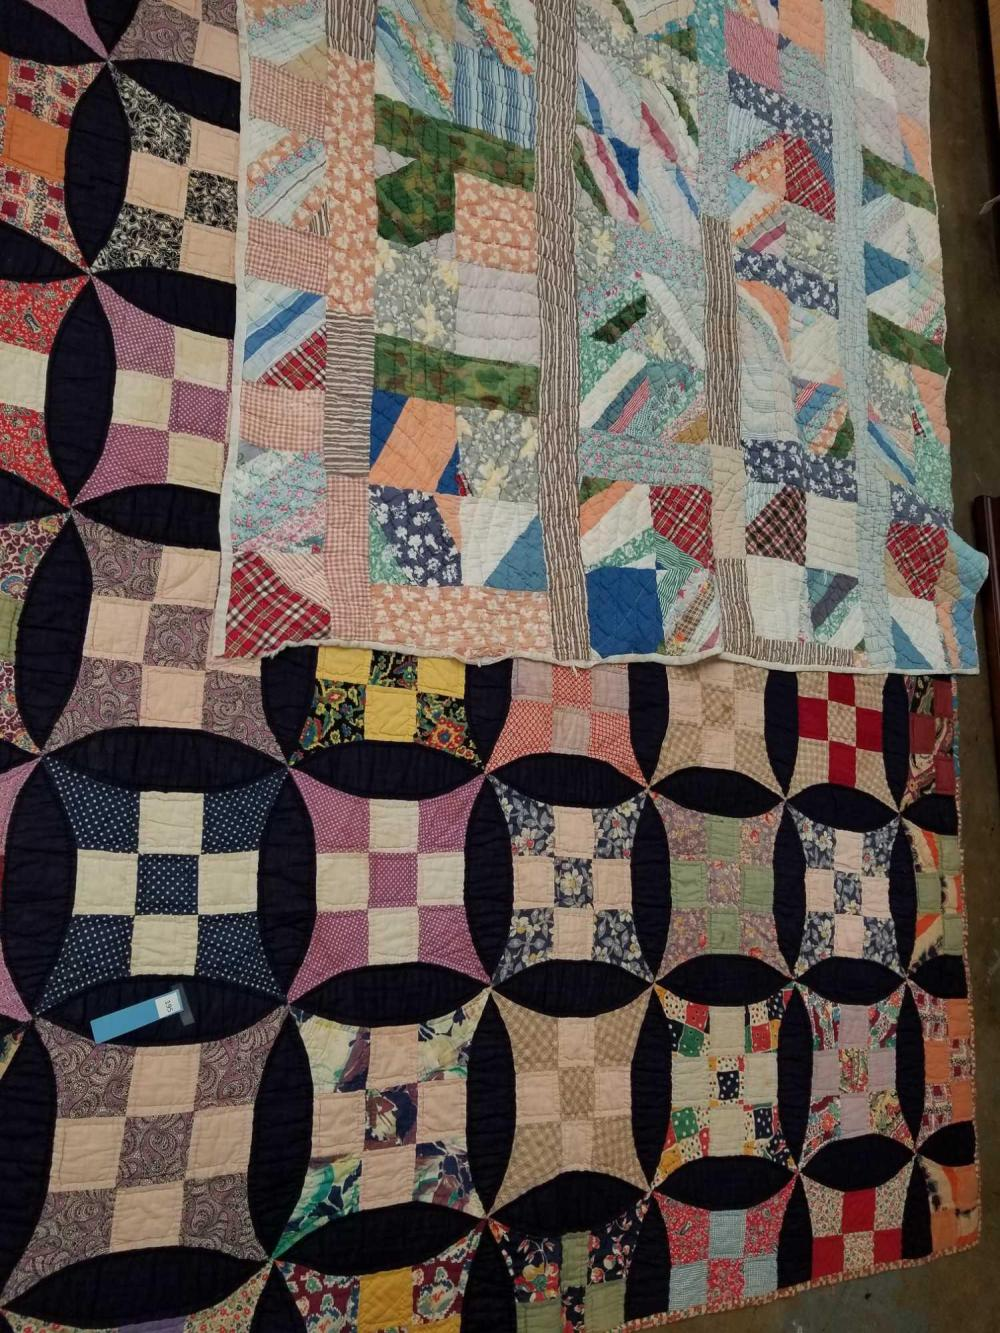 VINTAGE HAND MADE QUILTS - 2 ITEMS